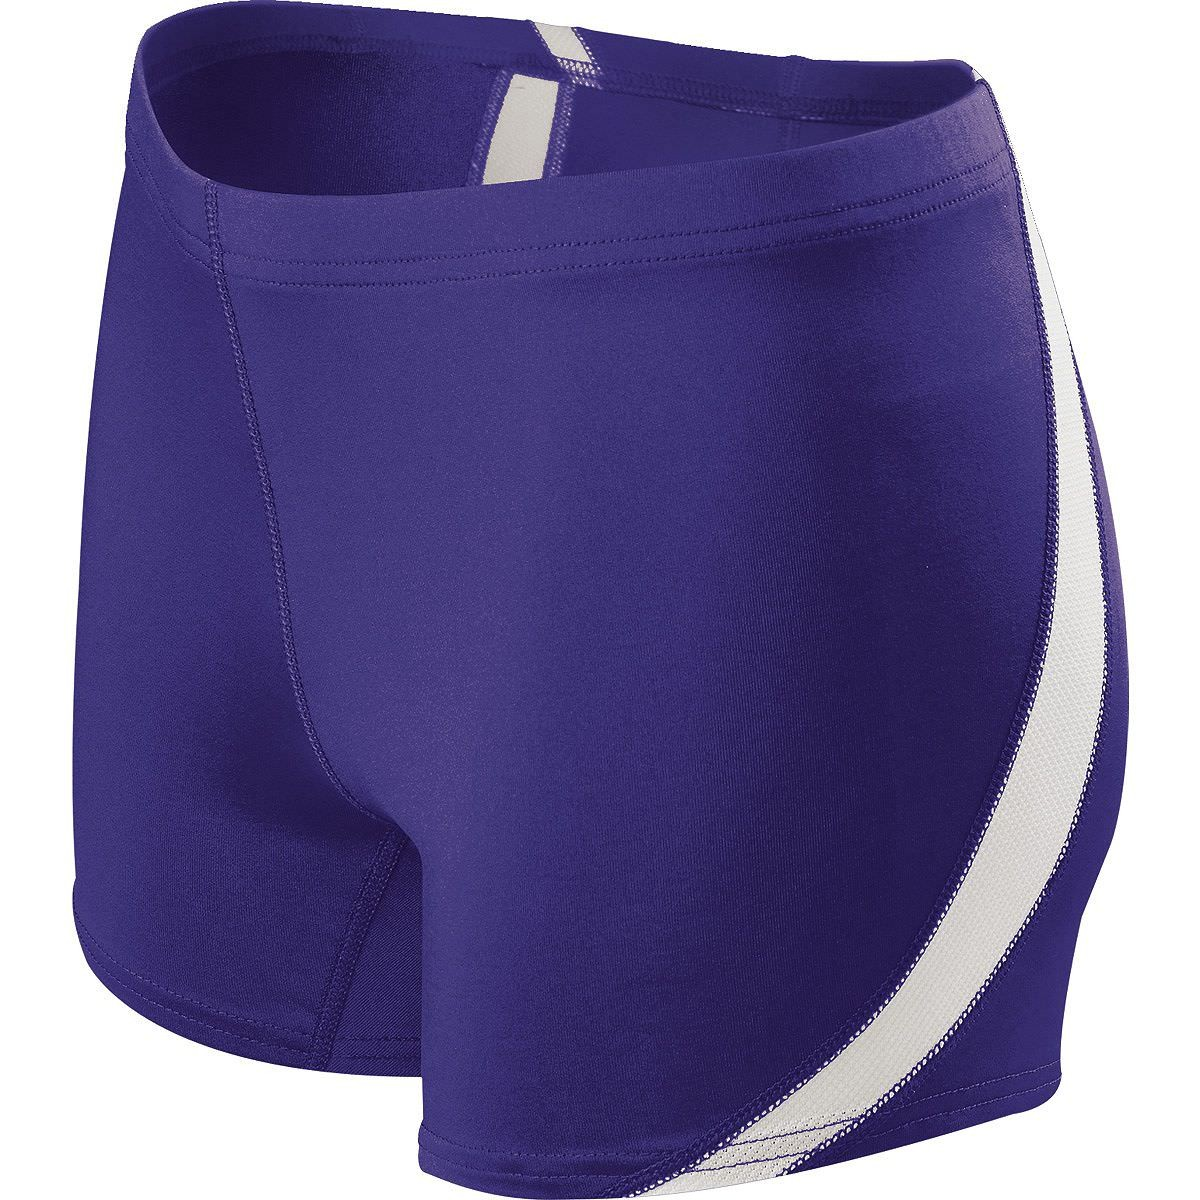 Custom Compression Shorts Saint Petersburg